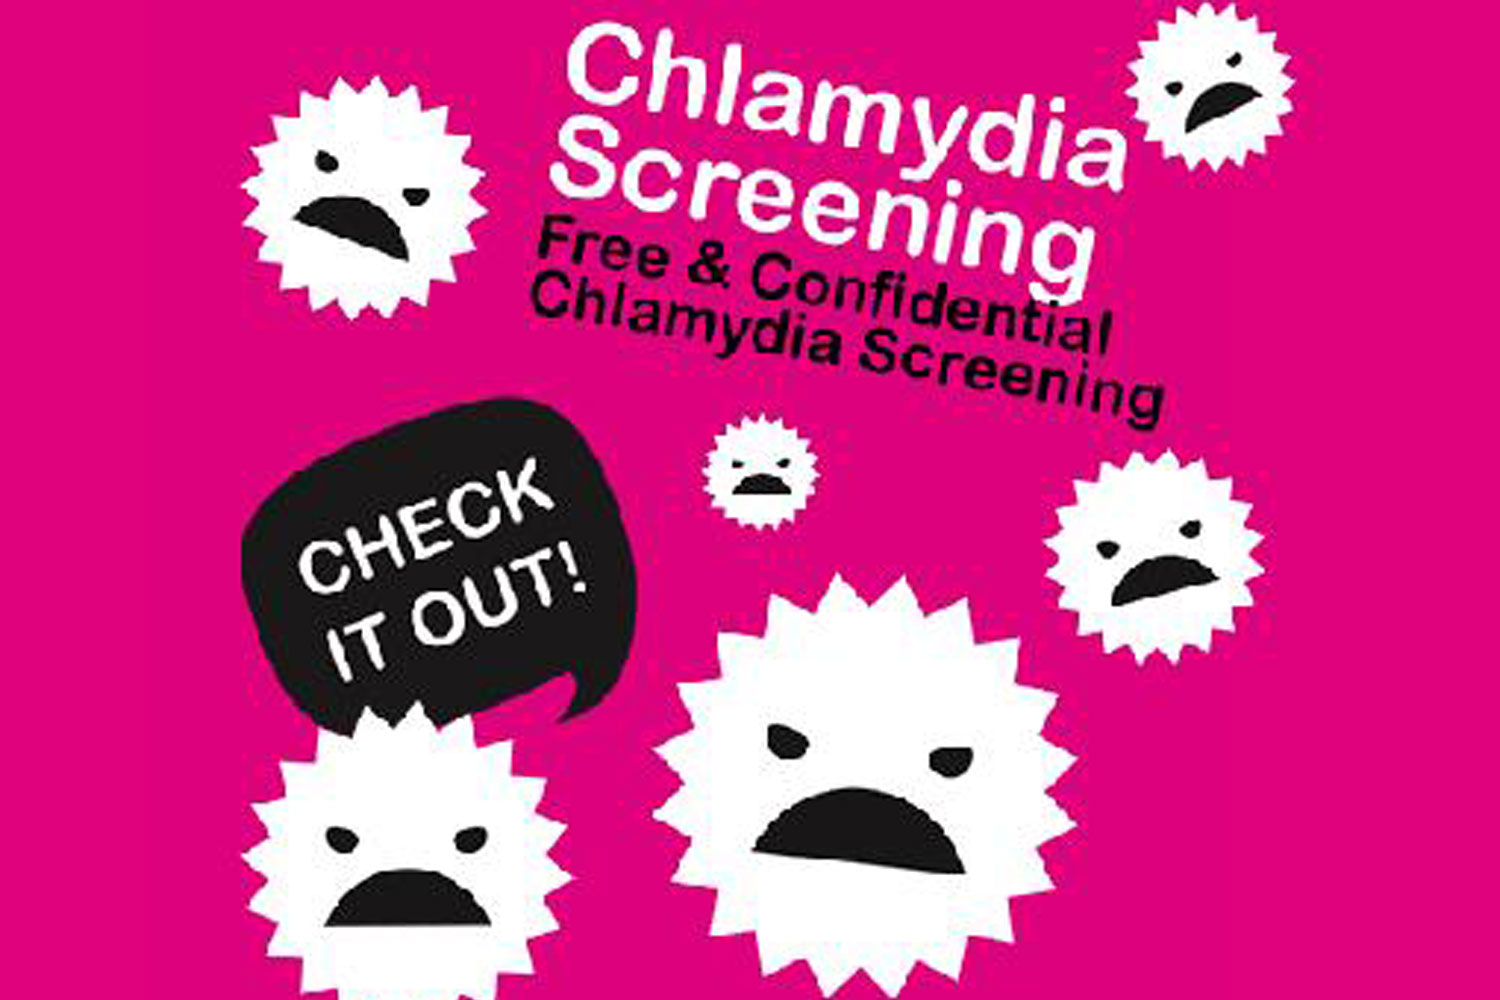 Chlamydia Screening - free & confidential